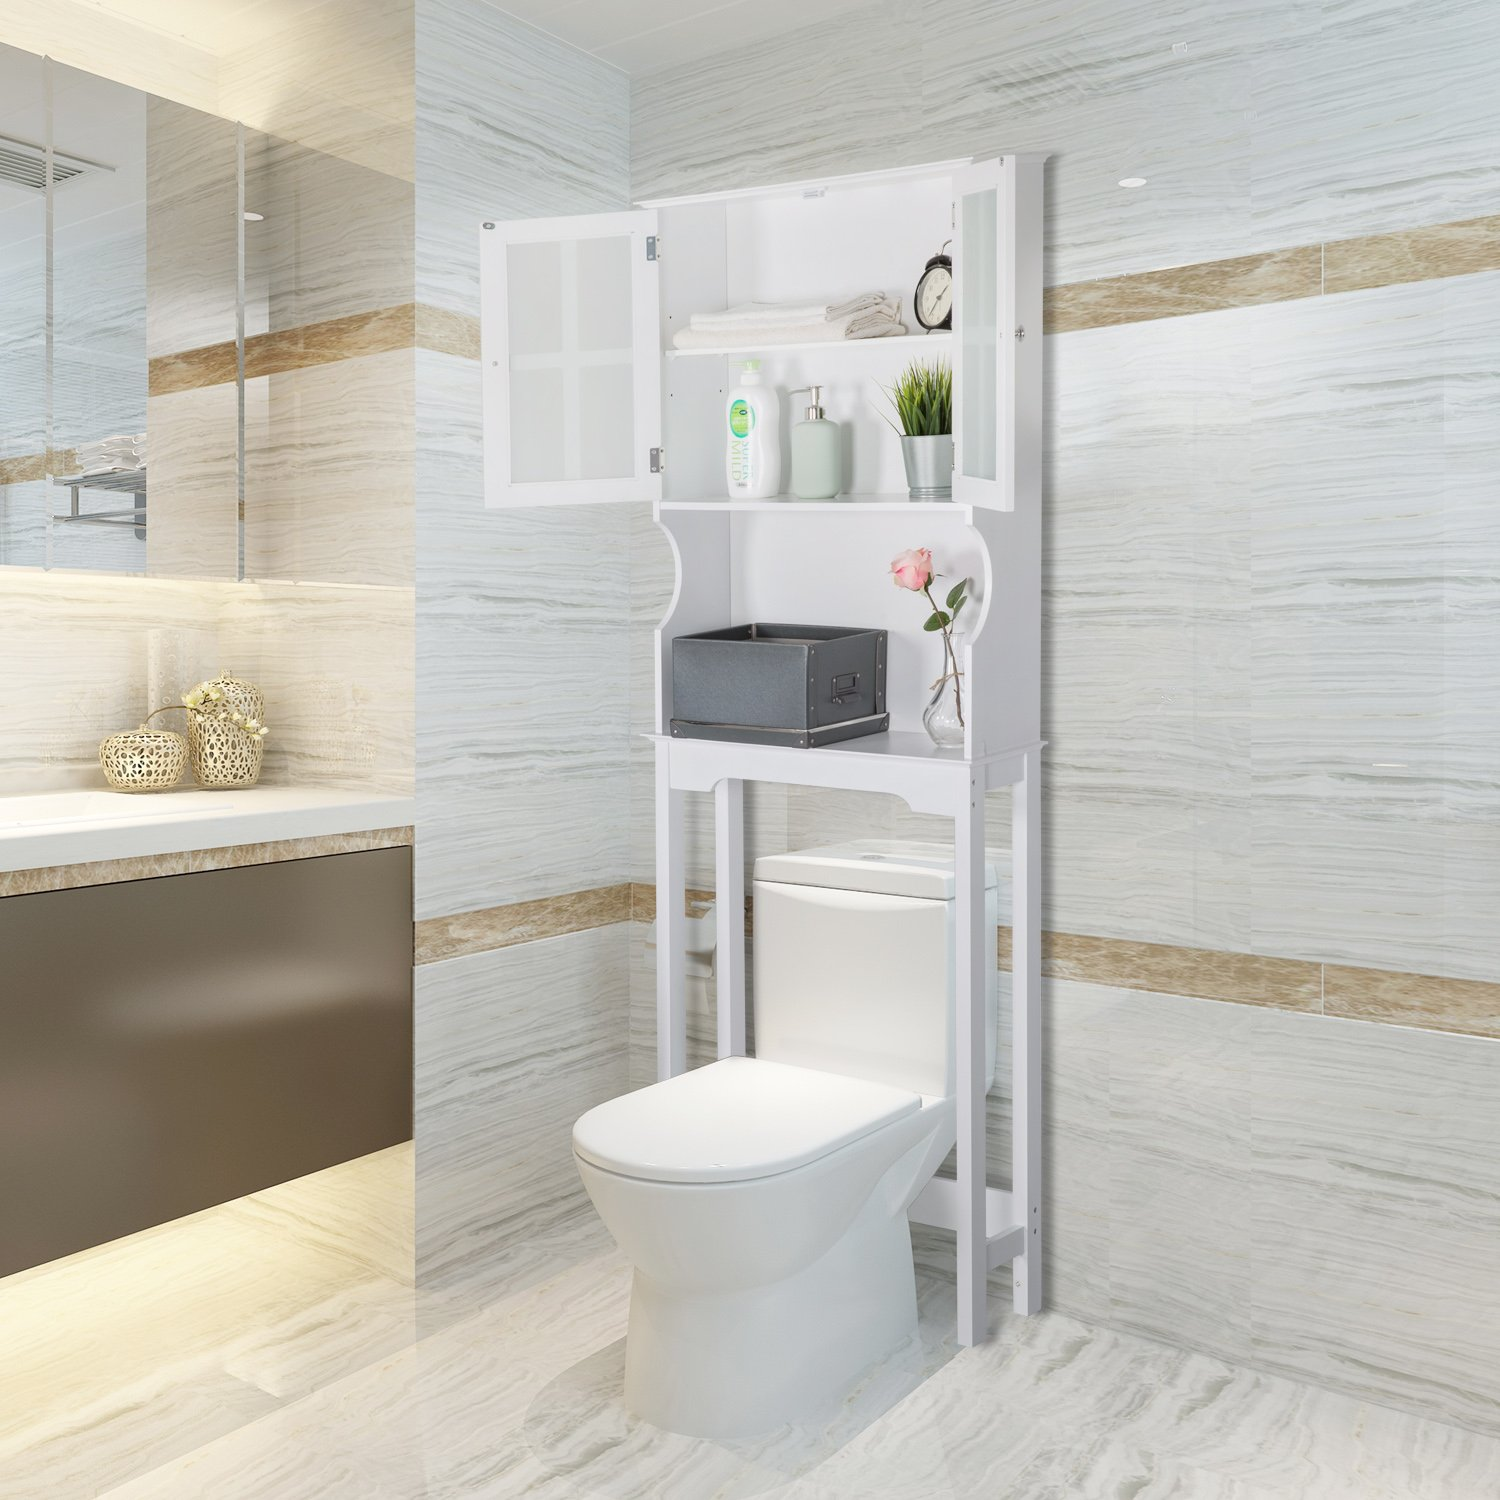 Peachtree Press Inc Home Bathroom Shelf Over The Toilet, Space Saver Cabinet,Bathroom Cabinet Organizer with Graceful Curve Cabinet&Moru Tempered Glass Door, White